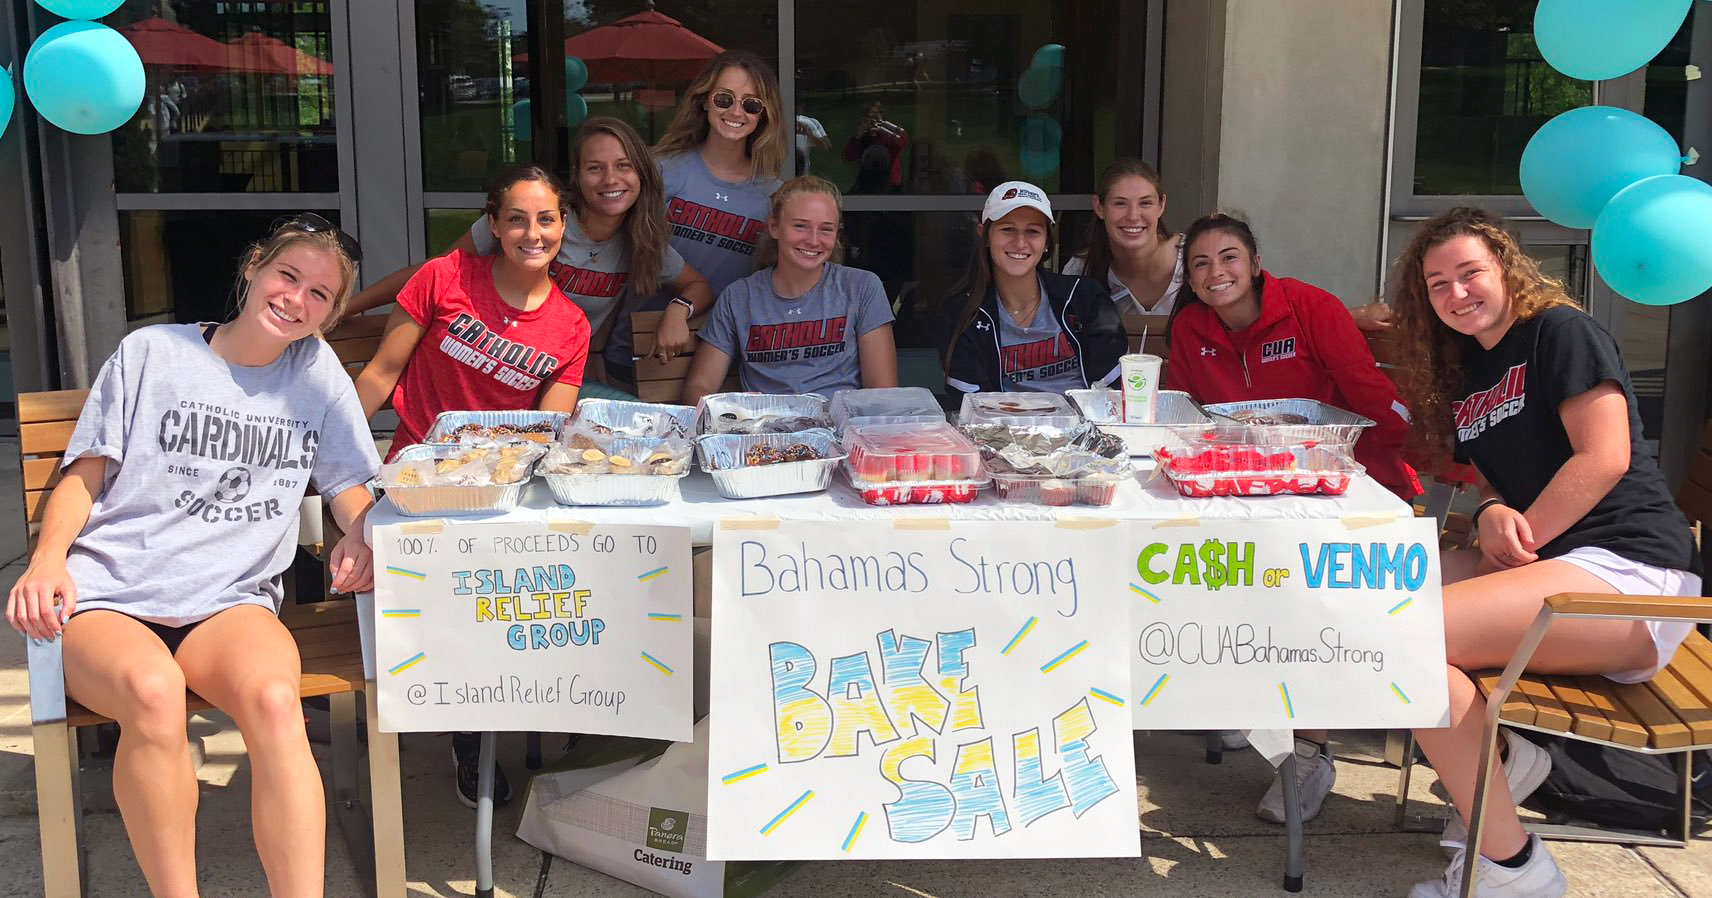 Women's Soccer Raises Over $2,000 for Hurricane Relief